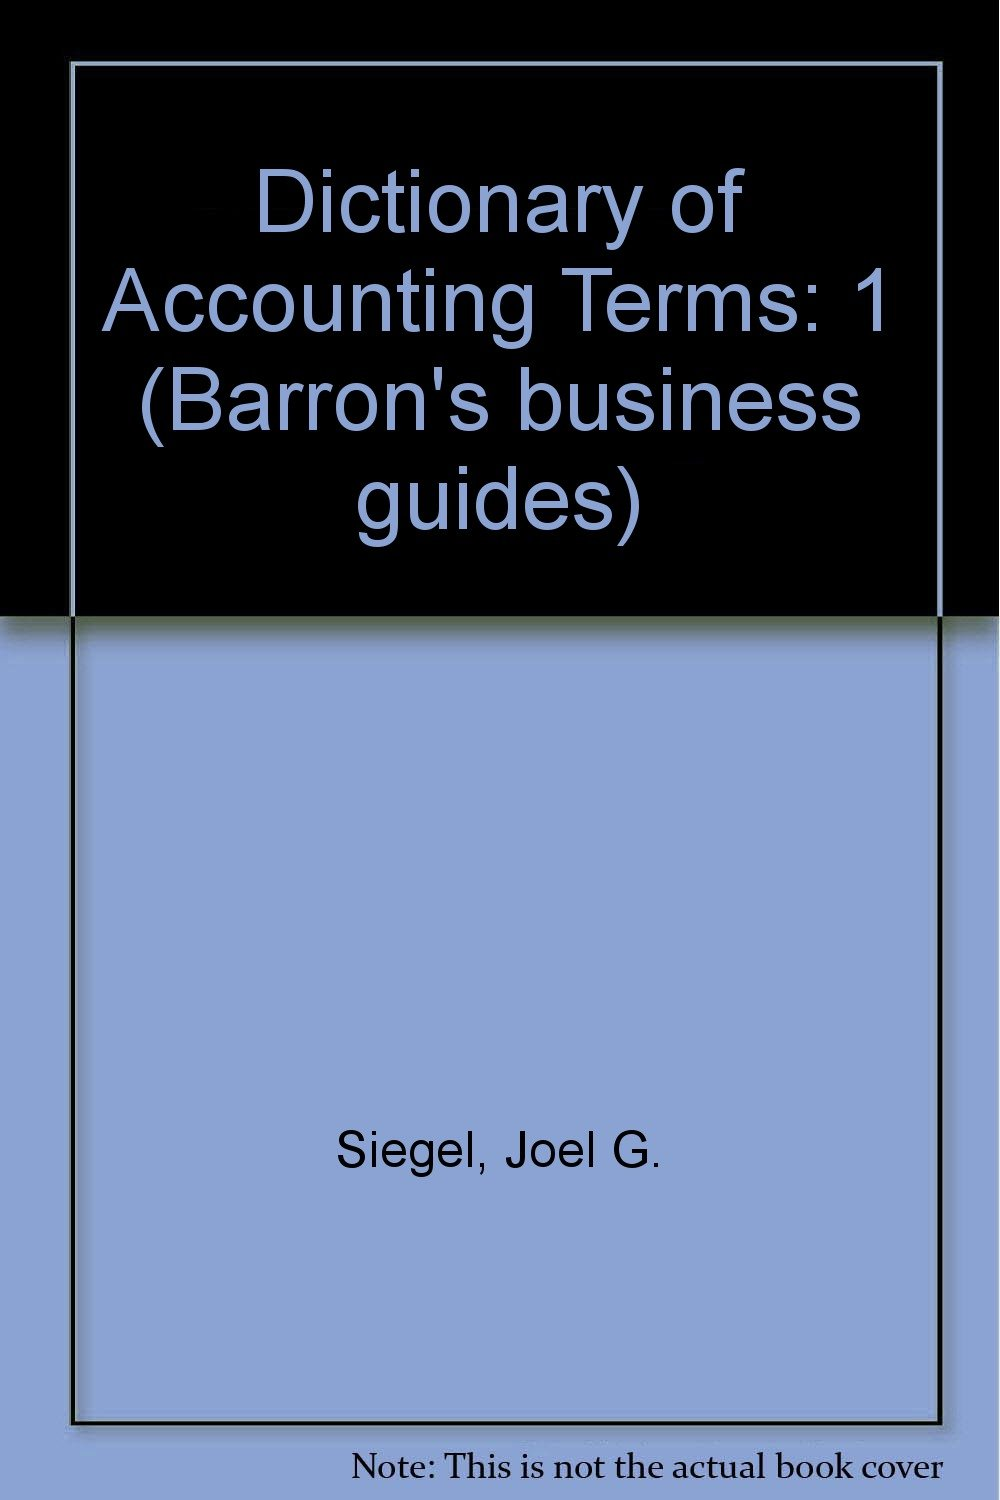 Dictionary of Accounting Terms (Barron's Business Guides)